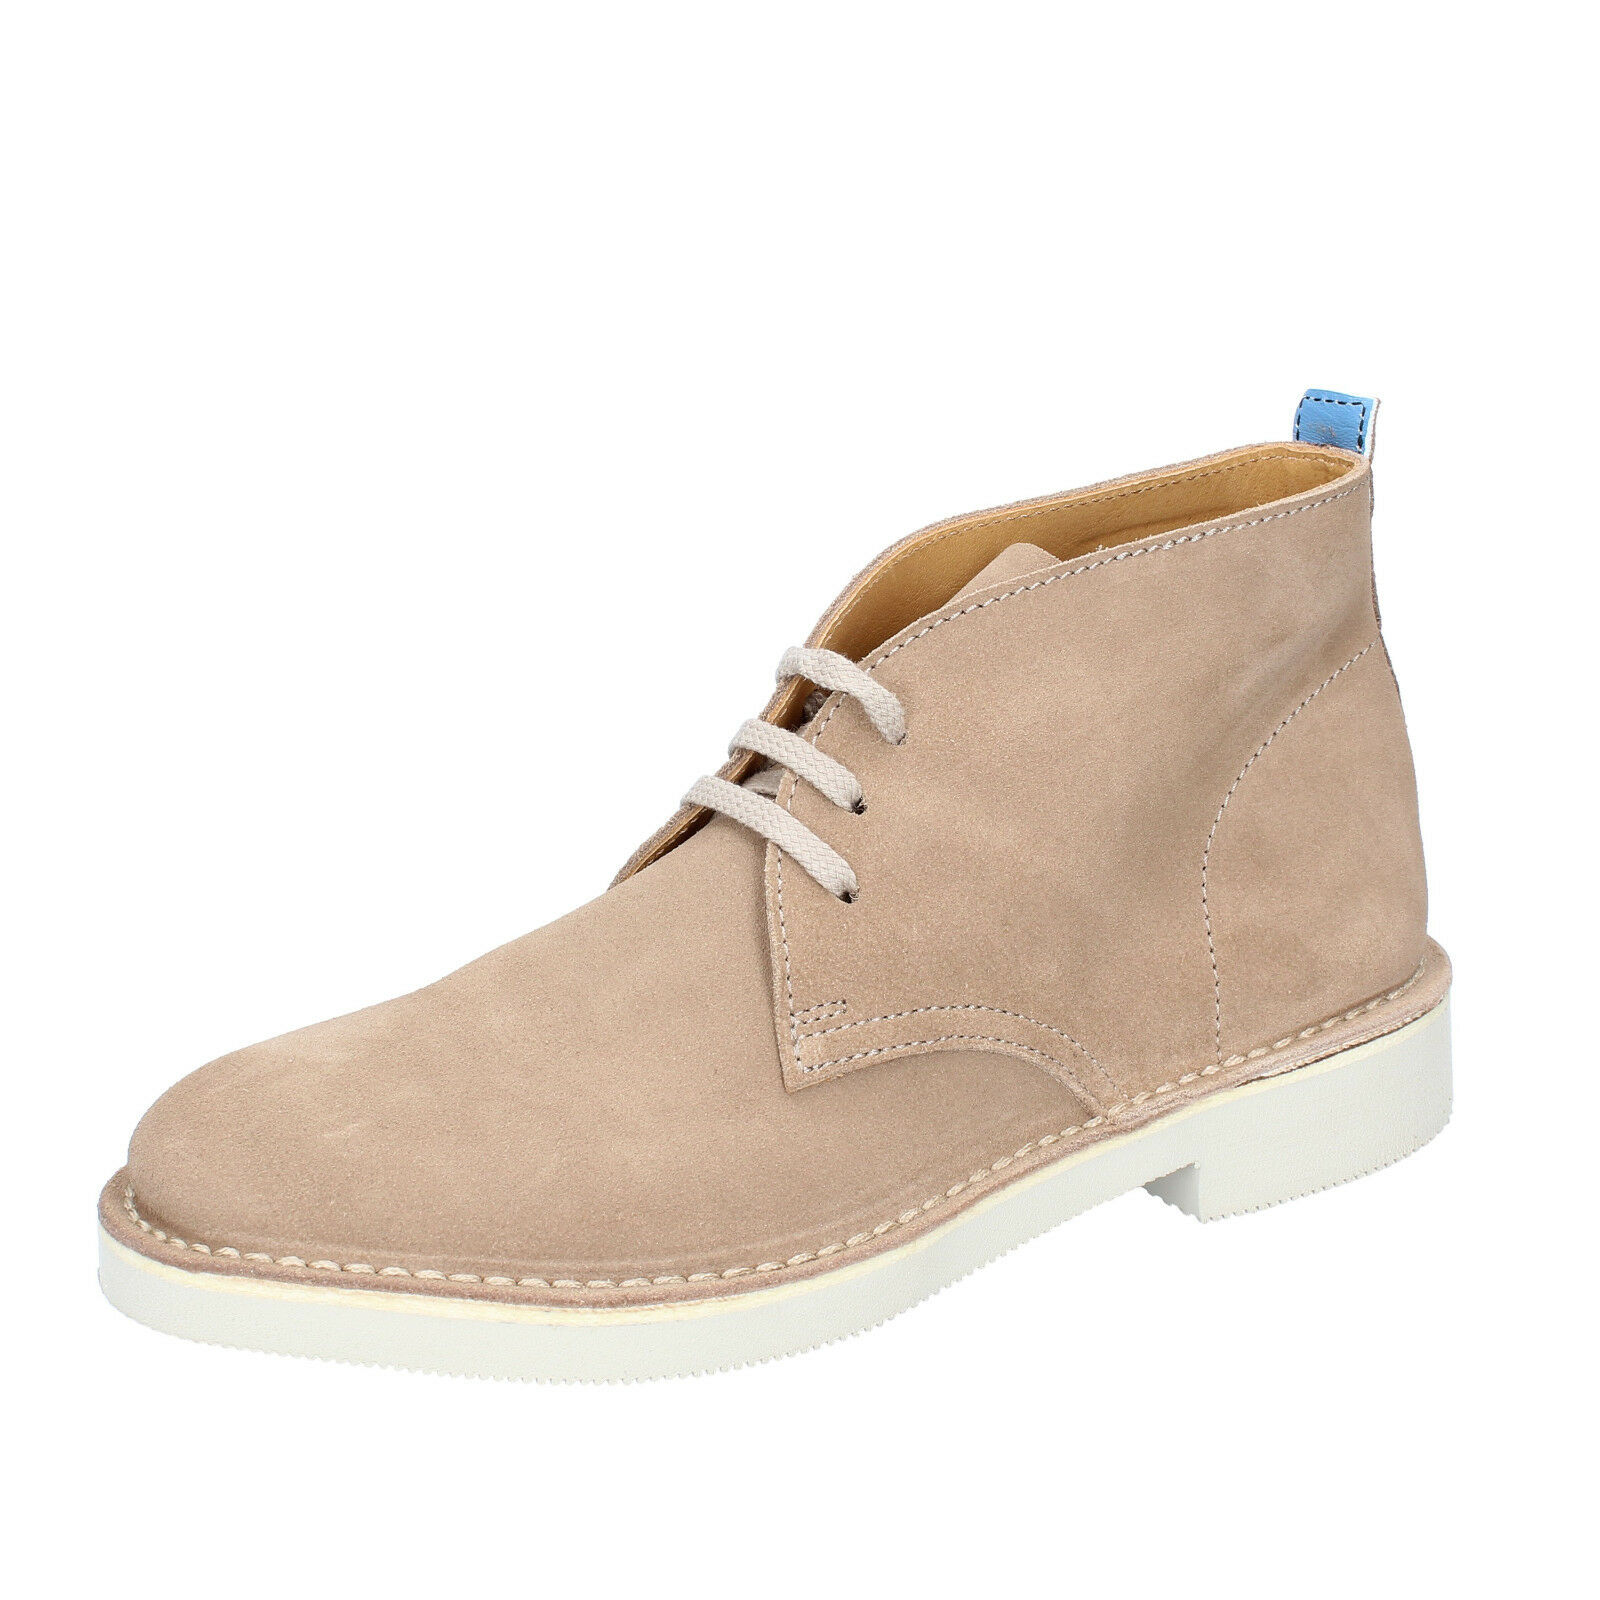 Mens chaussures MOMA 7 (UE 41) Desert bottes Beige Suede by772-41